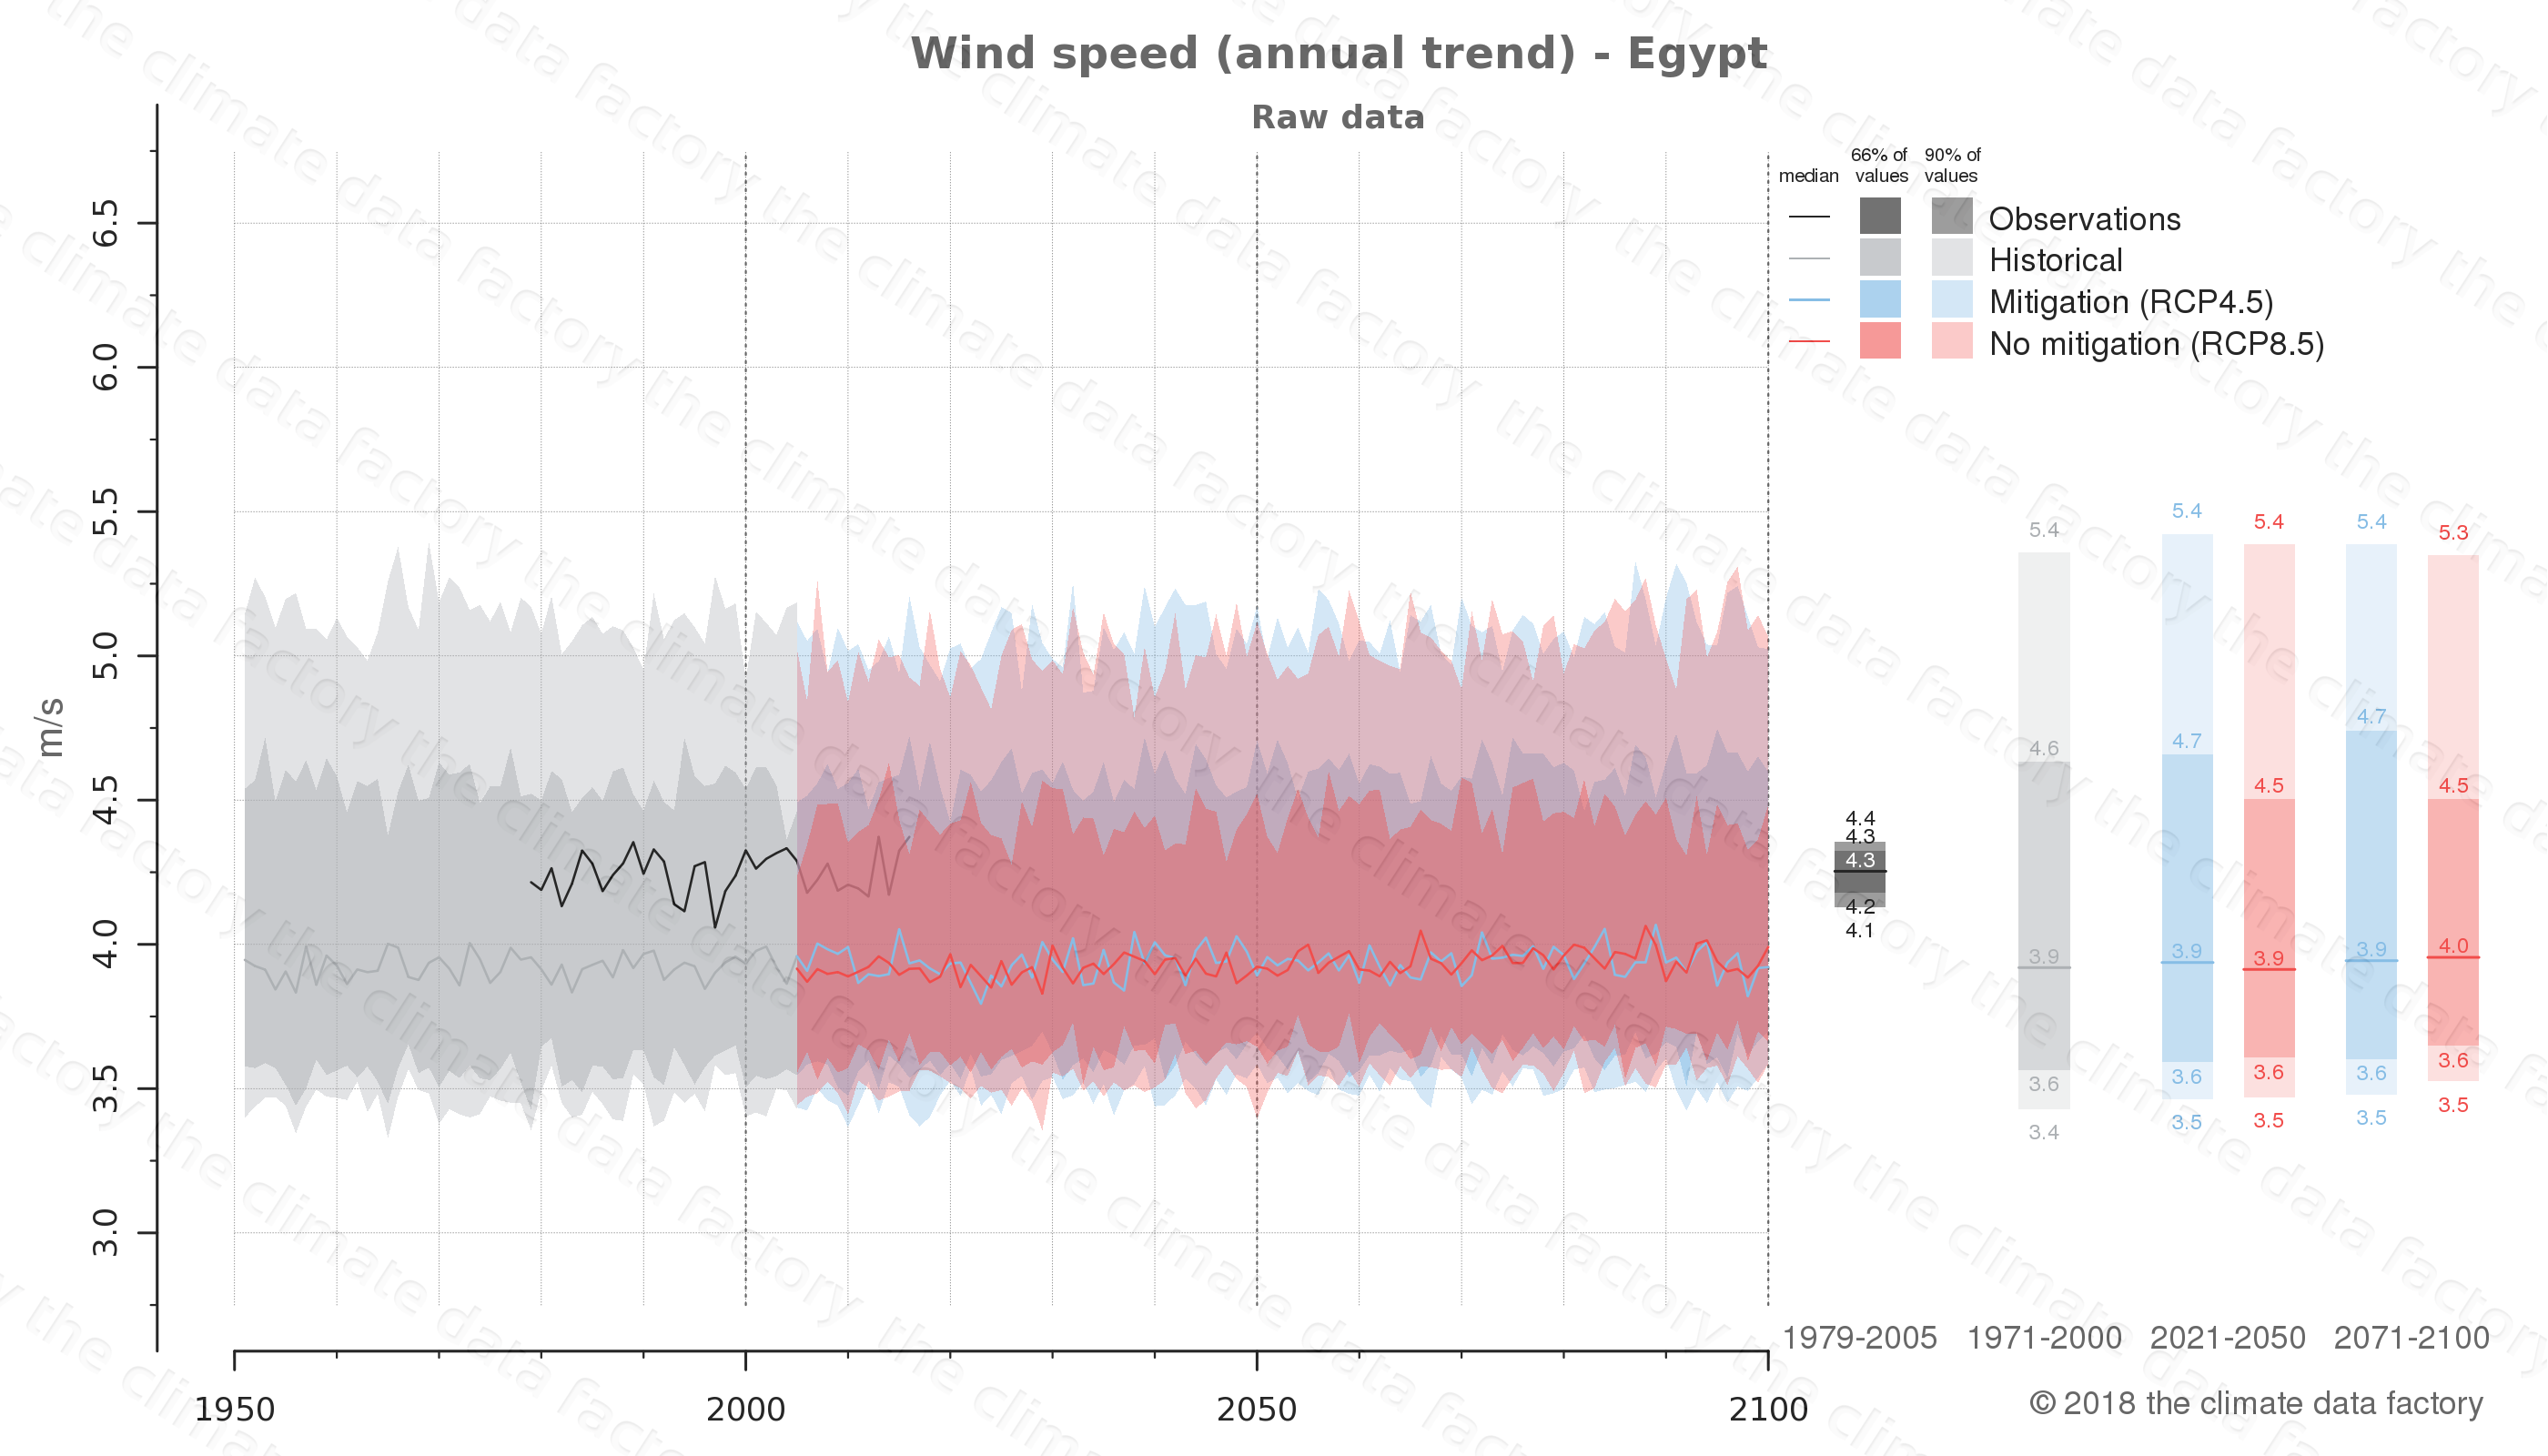 climate change data policy adaptation climate graph country data wind speed egypt africa